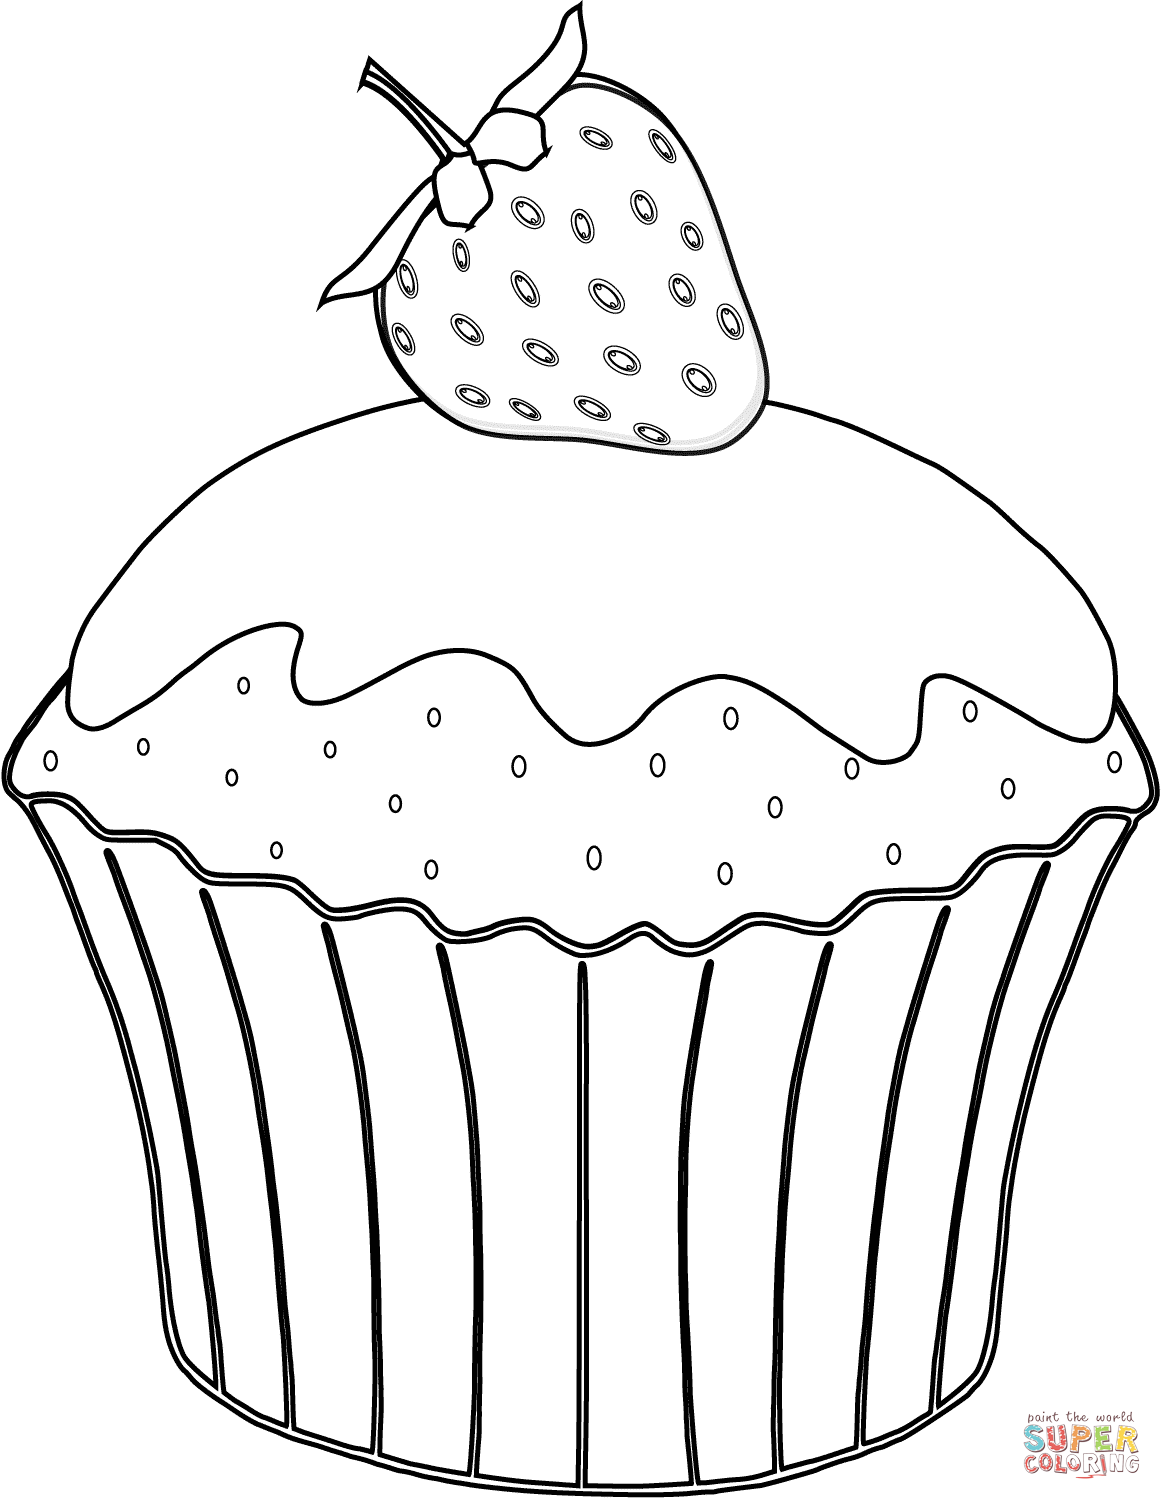 Muffin Coloring Pages To Print